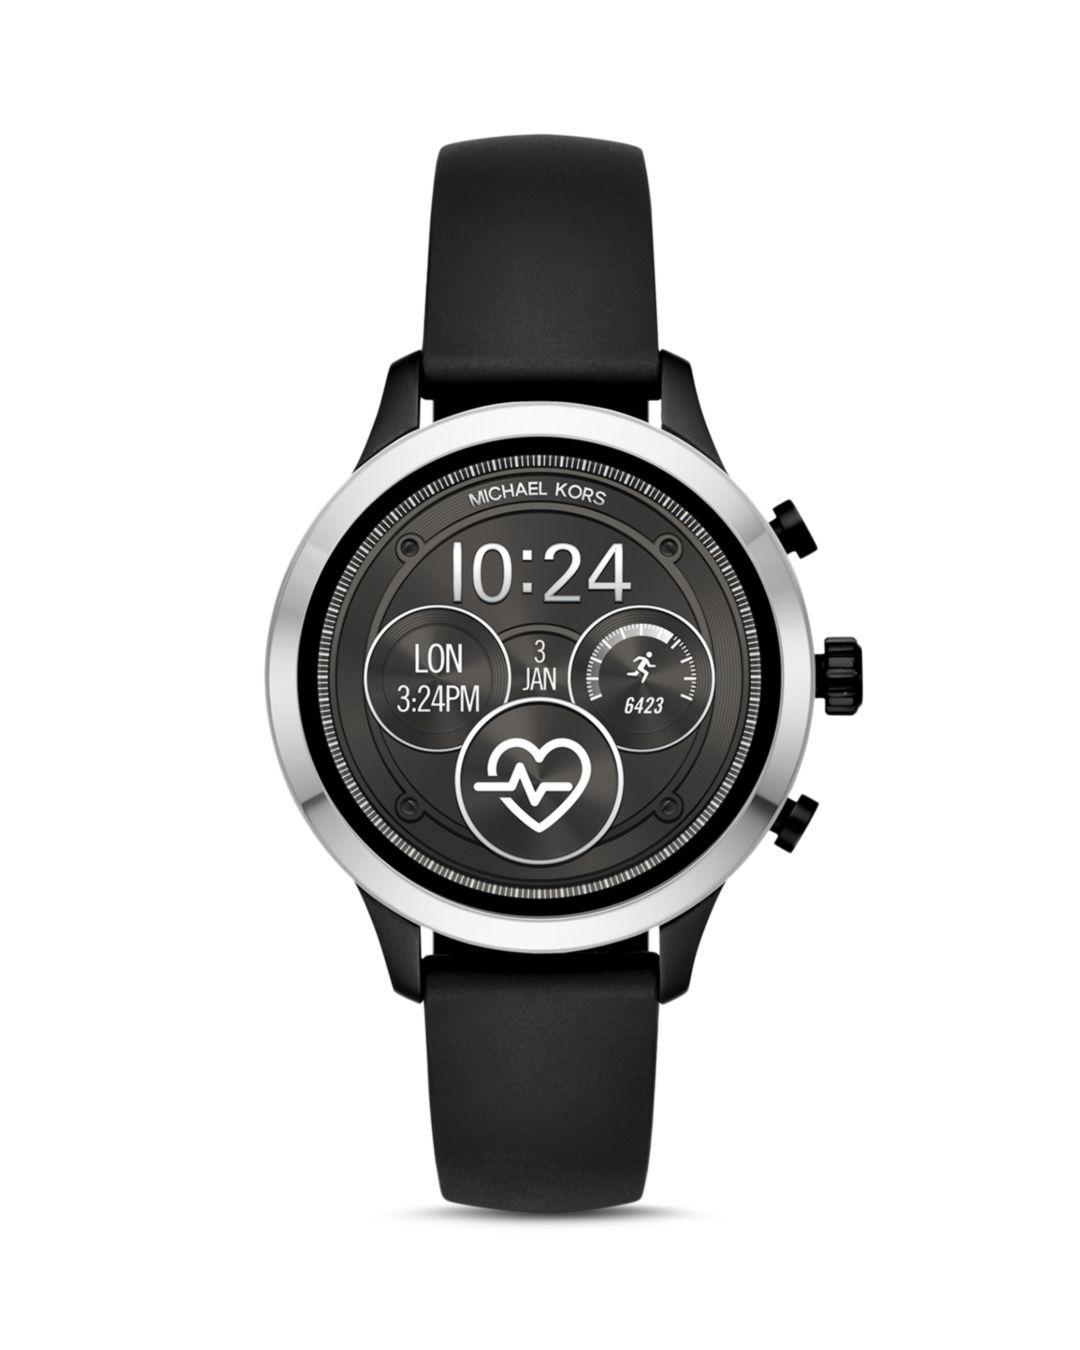 01a61ae5f62c Michael Kors - Black Mkt5049 Runway Stainless Steel And Rubber Smartwatch -  Lyst. View fullscreen